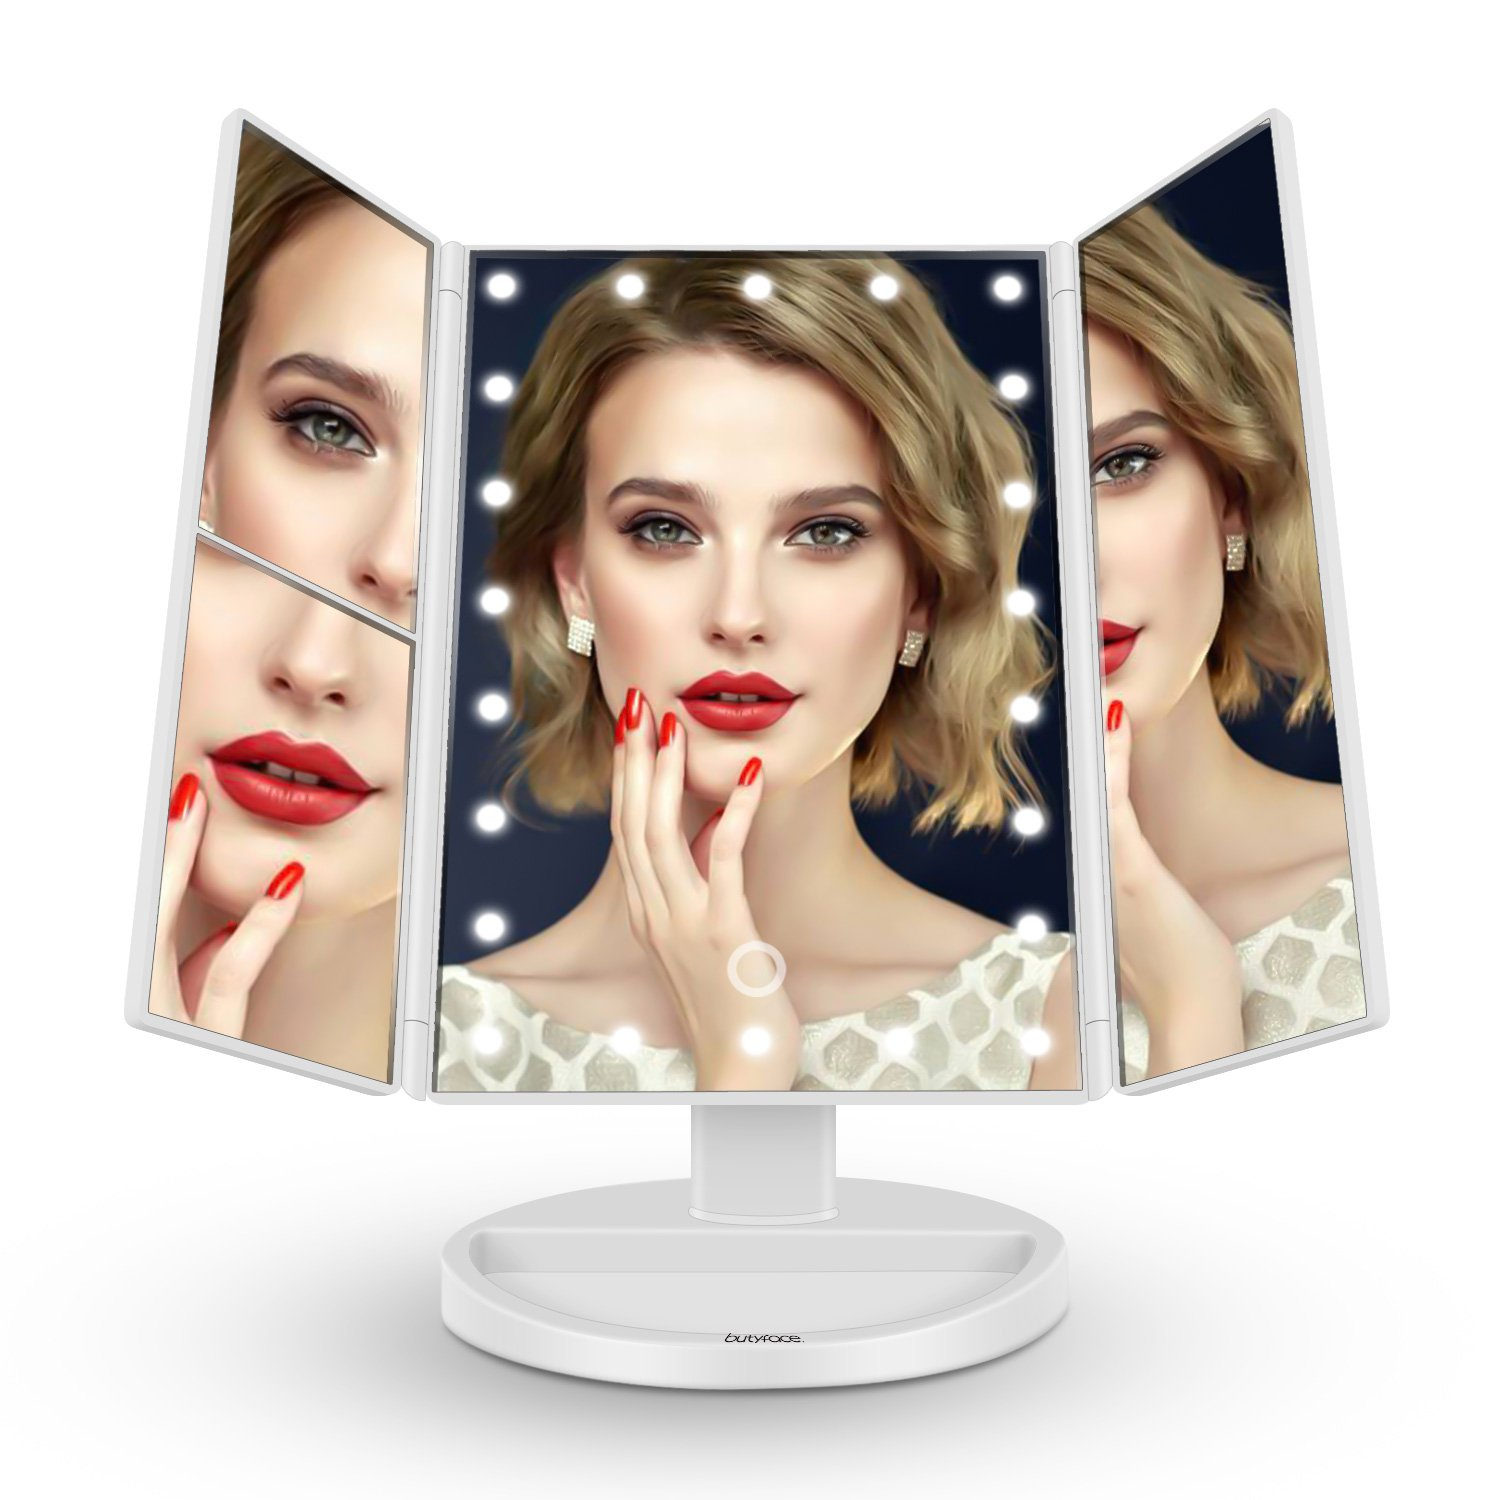 butyface Makeup Mirror with Lights, Lighted Vanity Mirror with 10x/3x/2x Magnification,Trifold Mirror with 21 Led Lights,Touch Screen, 180° Rotation,Dual Power Supply, Countertop Cosmetic Mirror